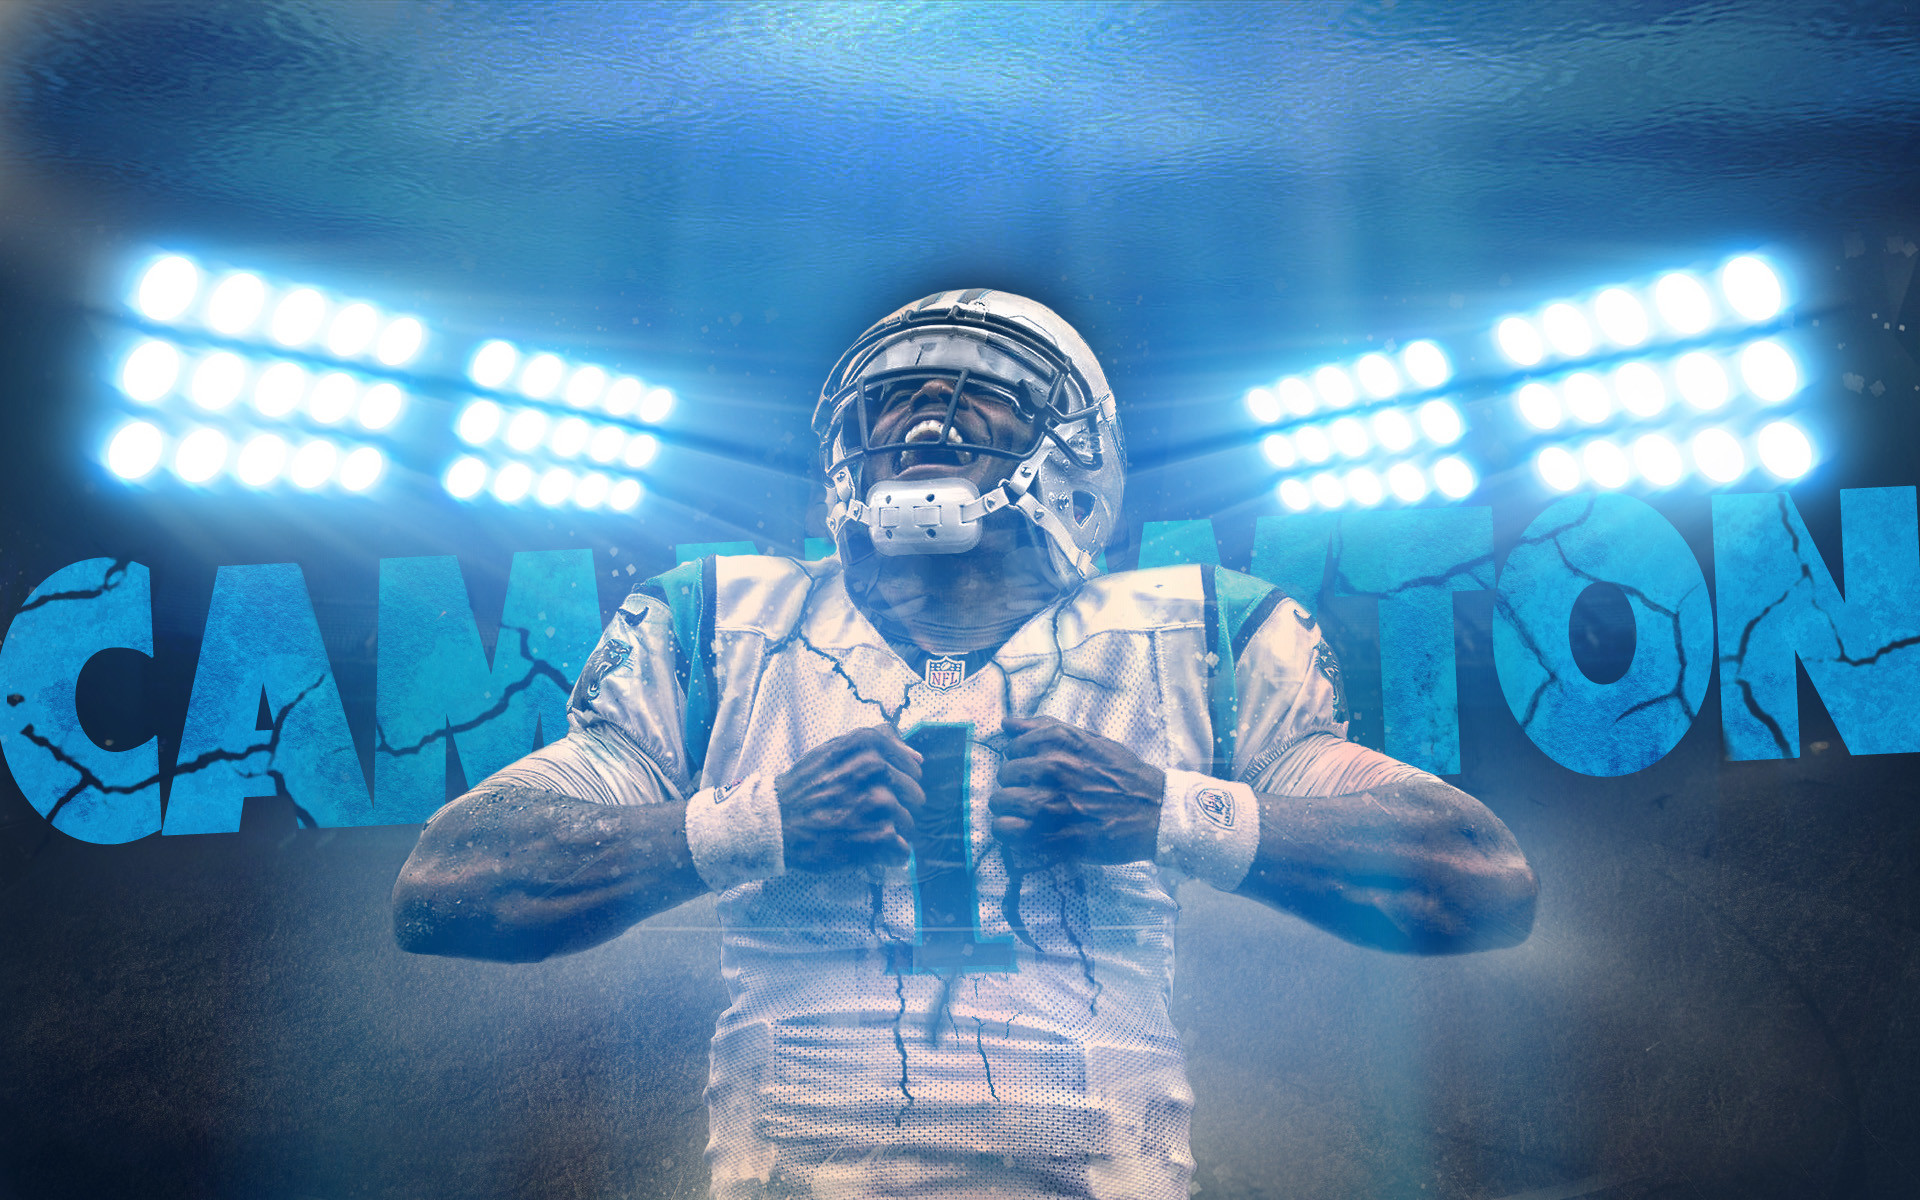 Cam.Newton.Carolina.Panthers.Wallpaper by 31ANDONLY on DeviantArt